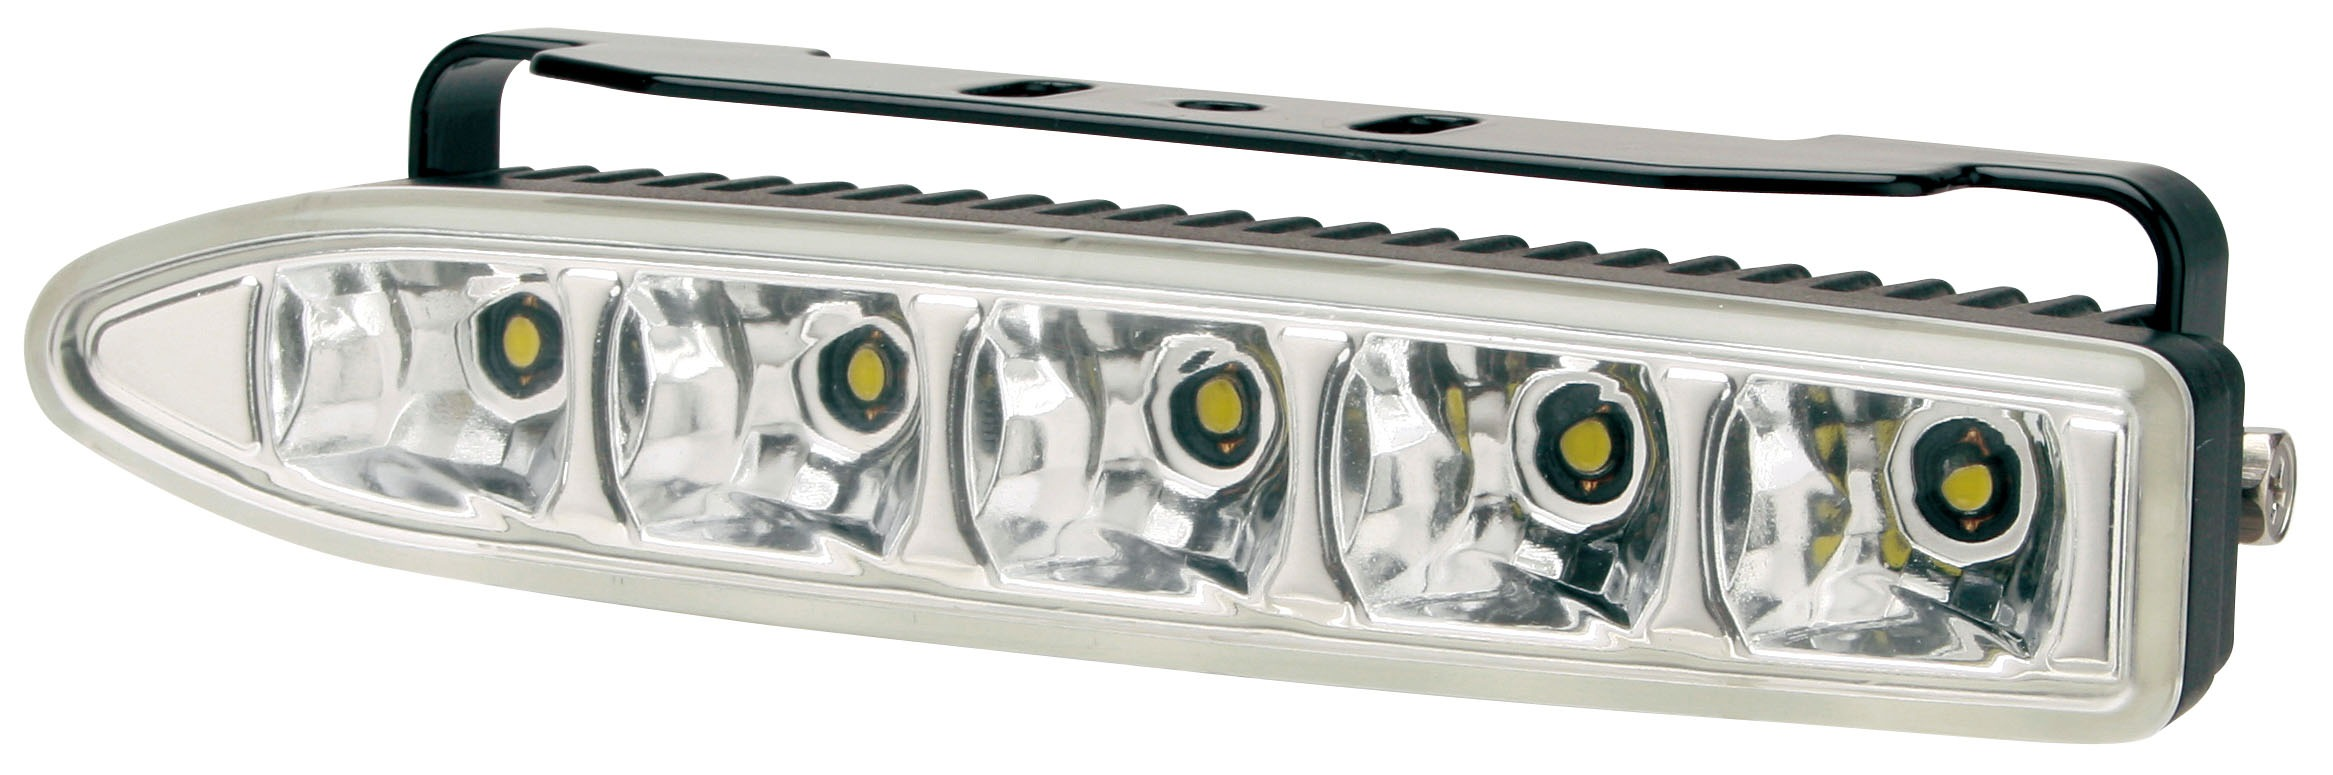 Automobile LED Daytime Running Lights for Lighting Series made by Sirius Light Technology Co., LTD 南勝企業股份有限公司 - MatchSupplier.com